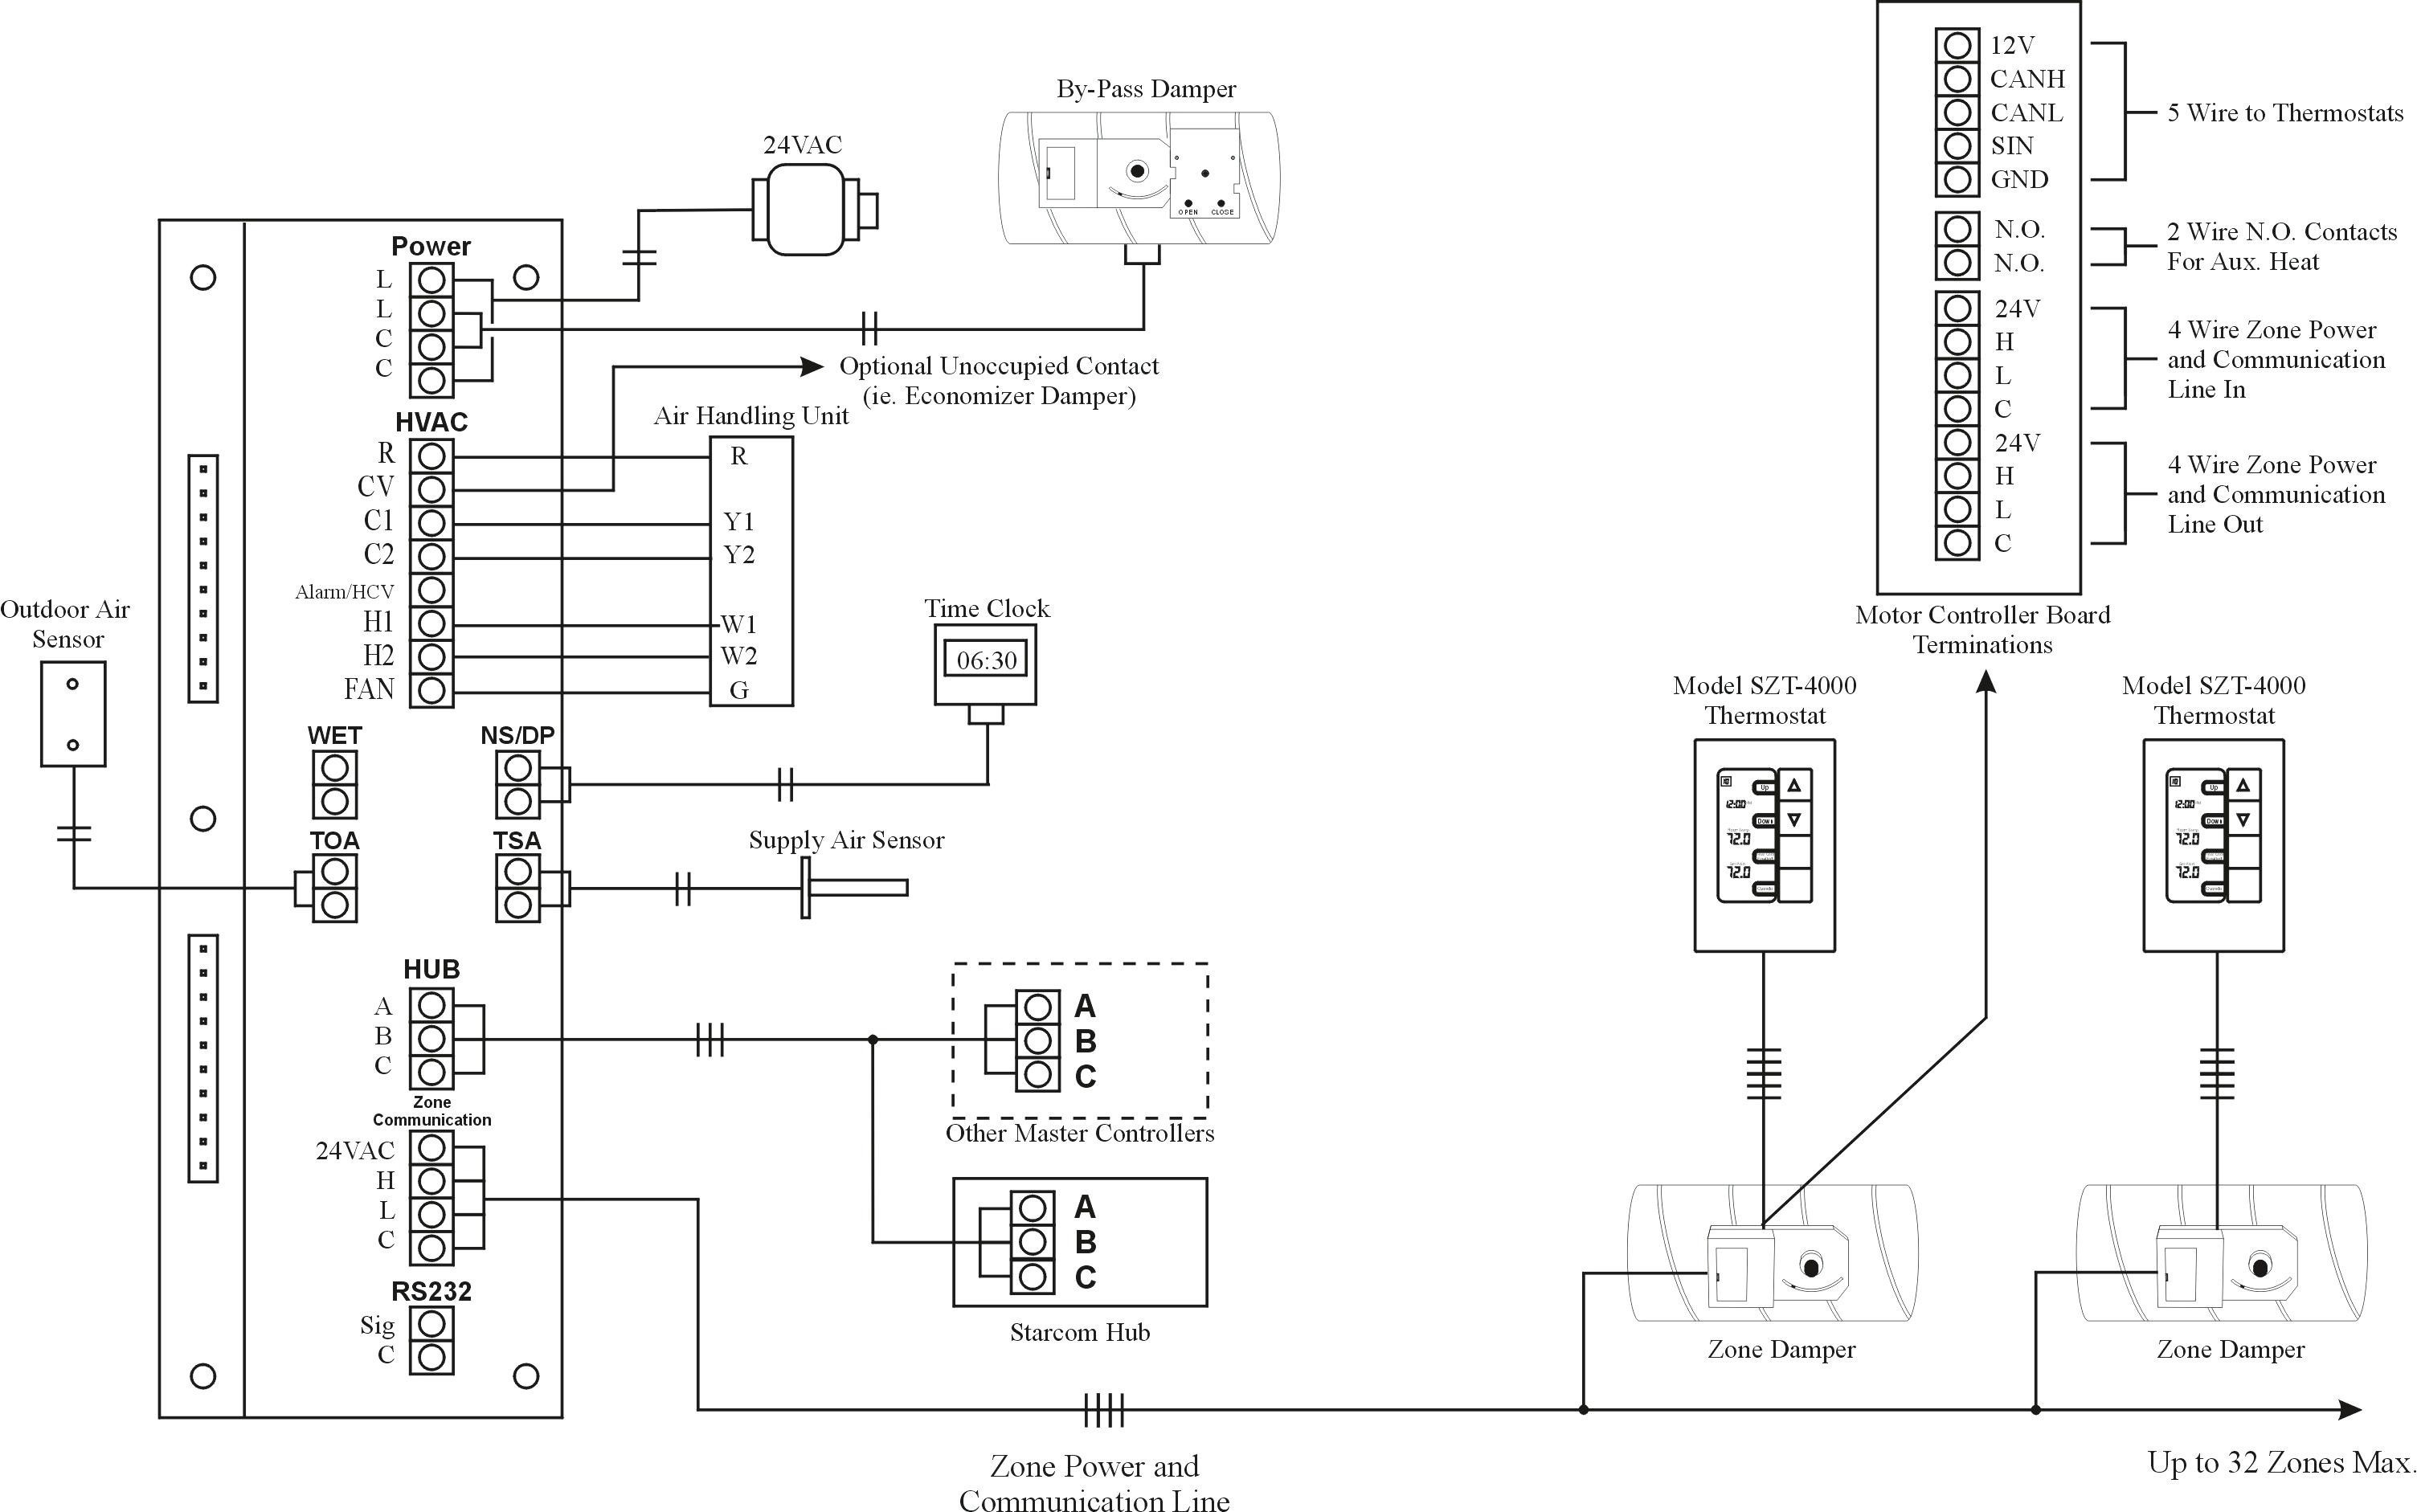 Heating And Cooling Thermostat Wiring Diagram Luxury Wire Adorable Goodman Furnace